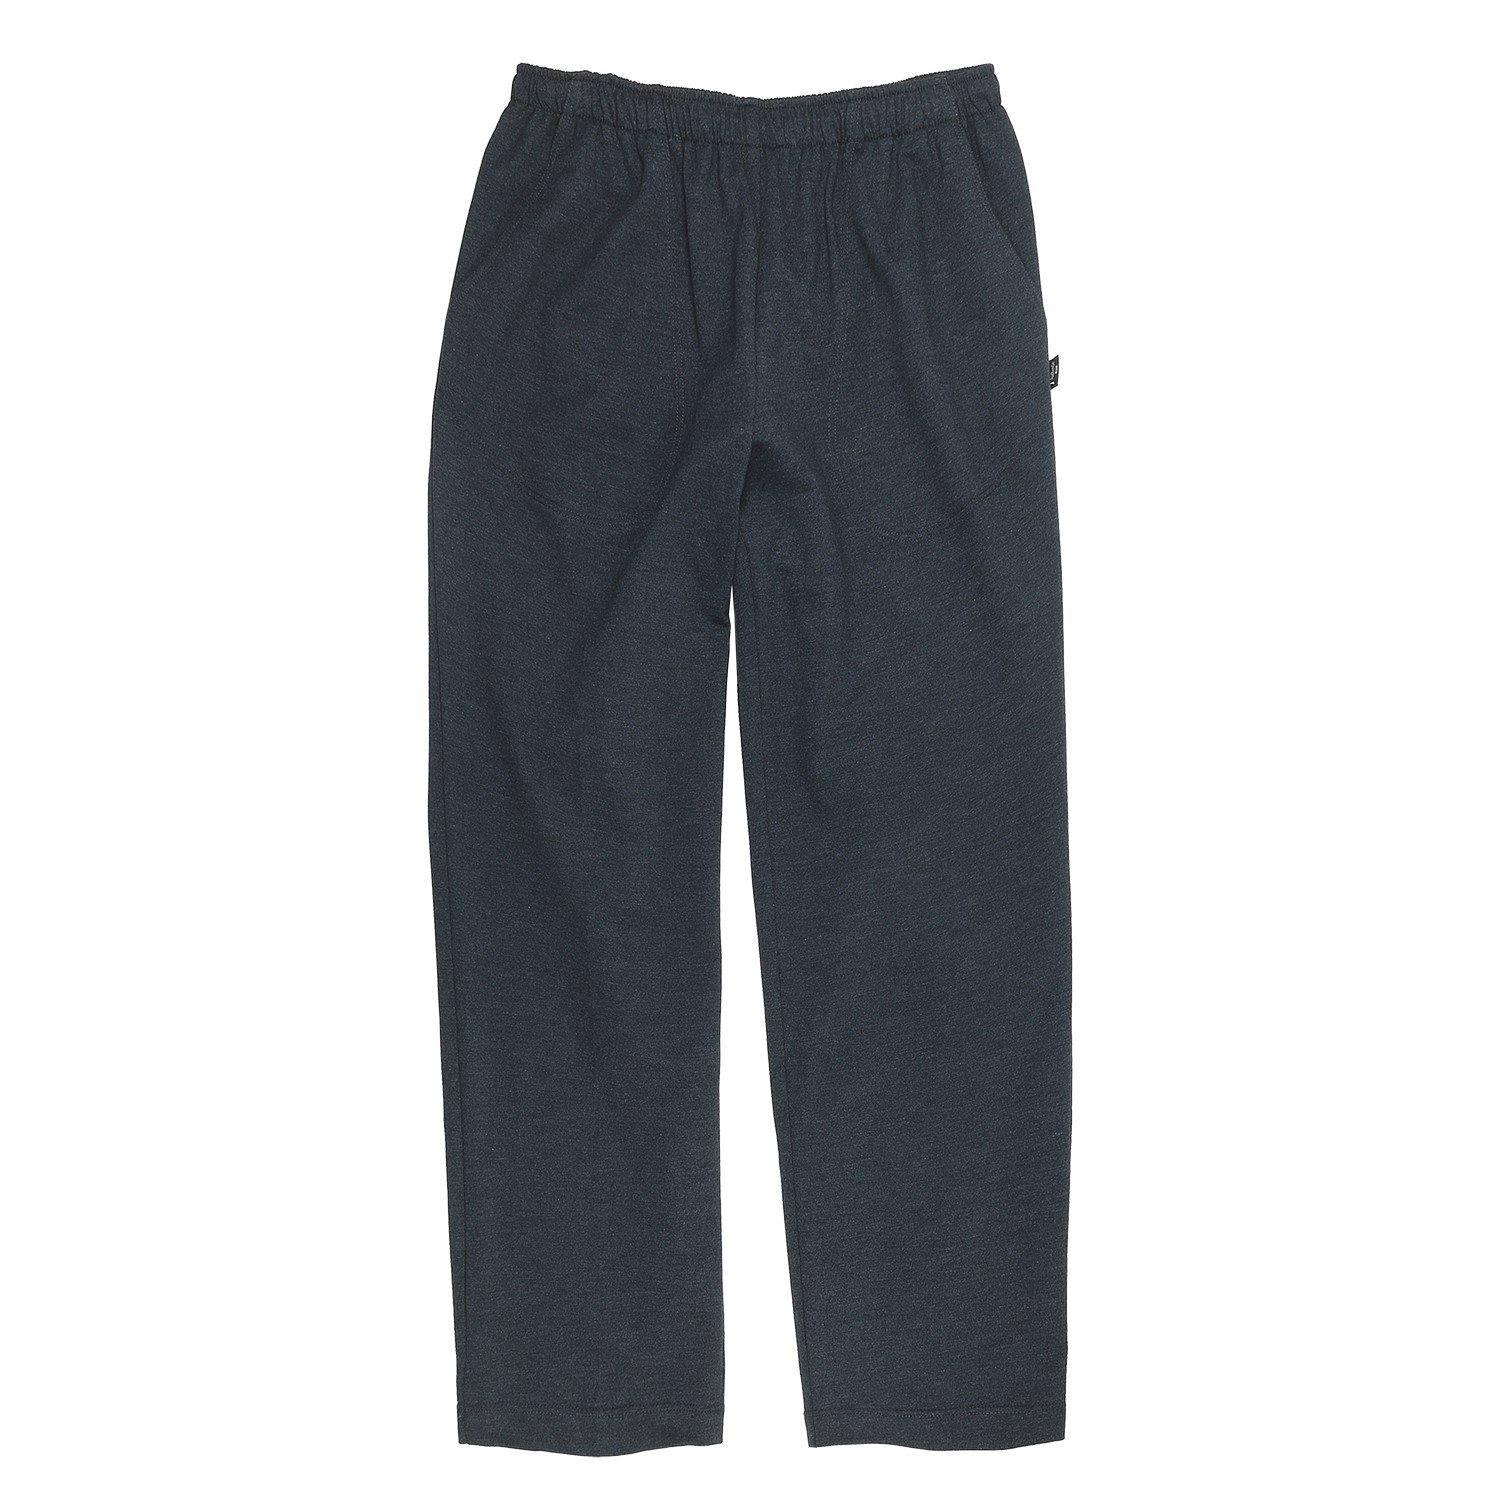 Image de détail de Pantalon de jogging anthracite by AUTHENTIC KLEIN - tailles longues